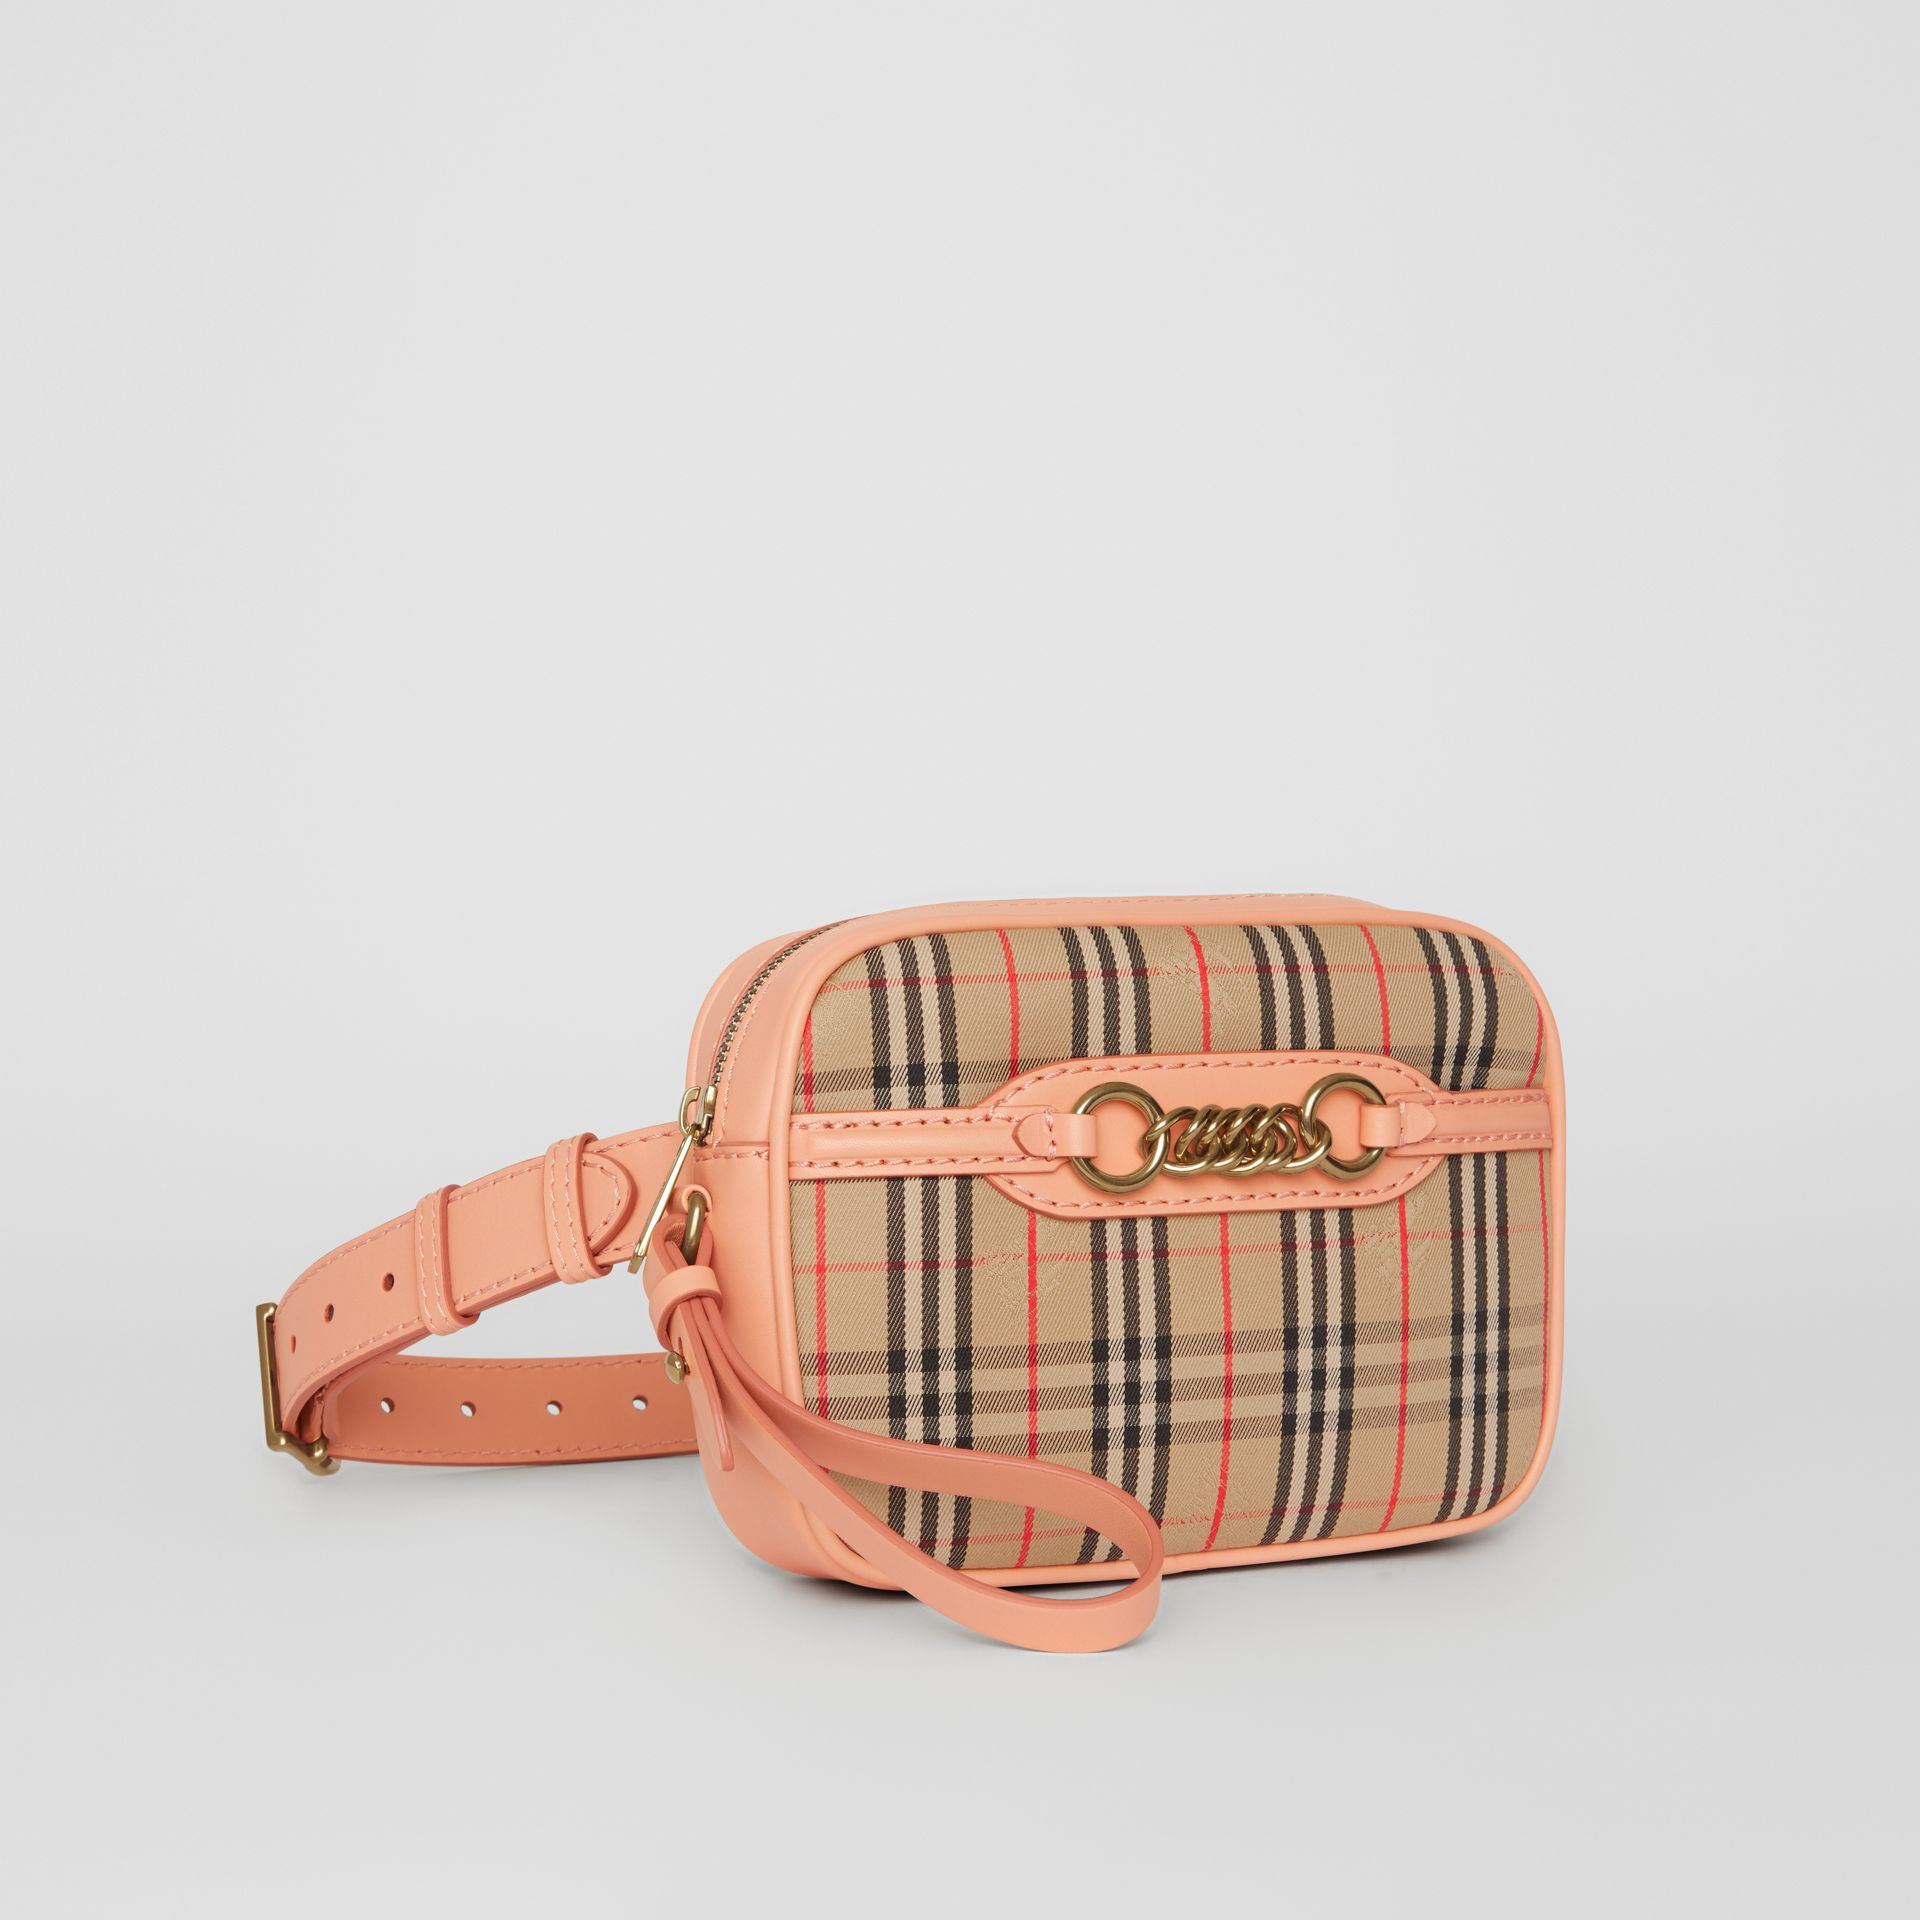 The 1983 Check Link Bum Bag with Leather Trim in Peach - Women | Burberry - gallery image 6